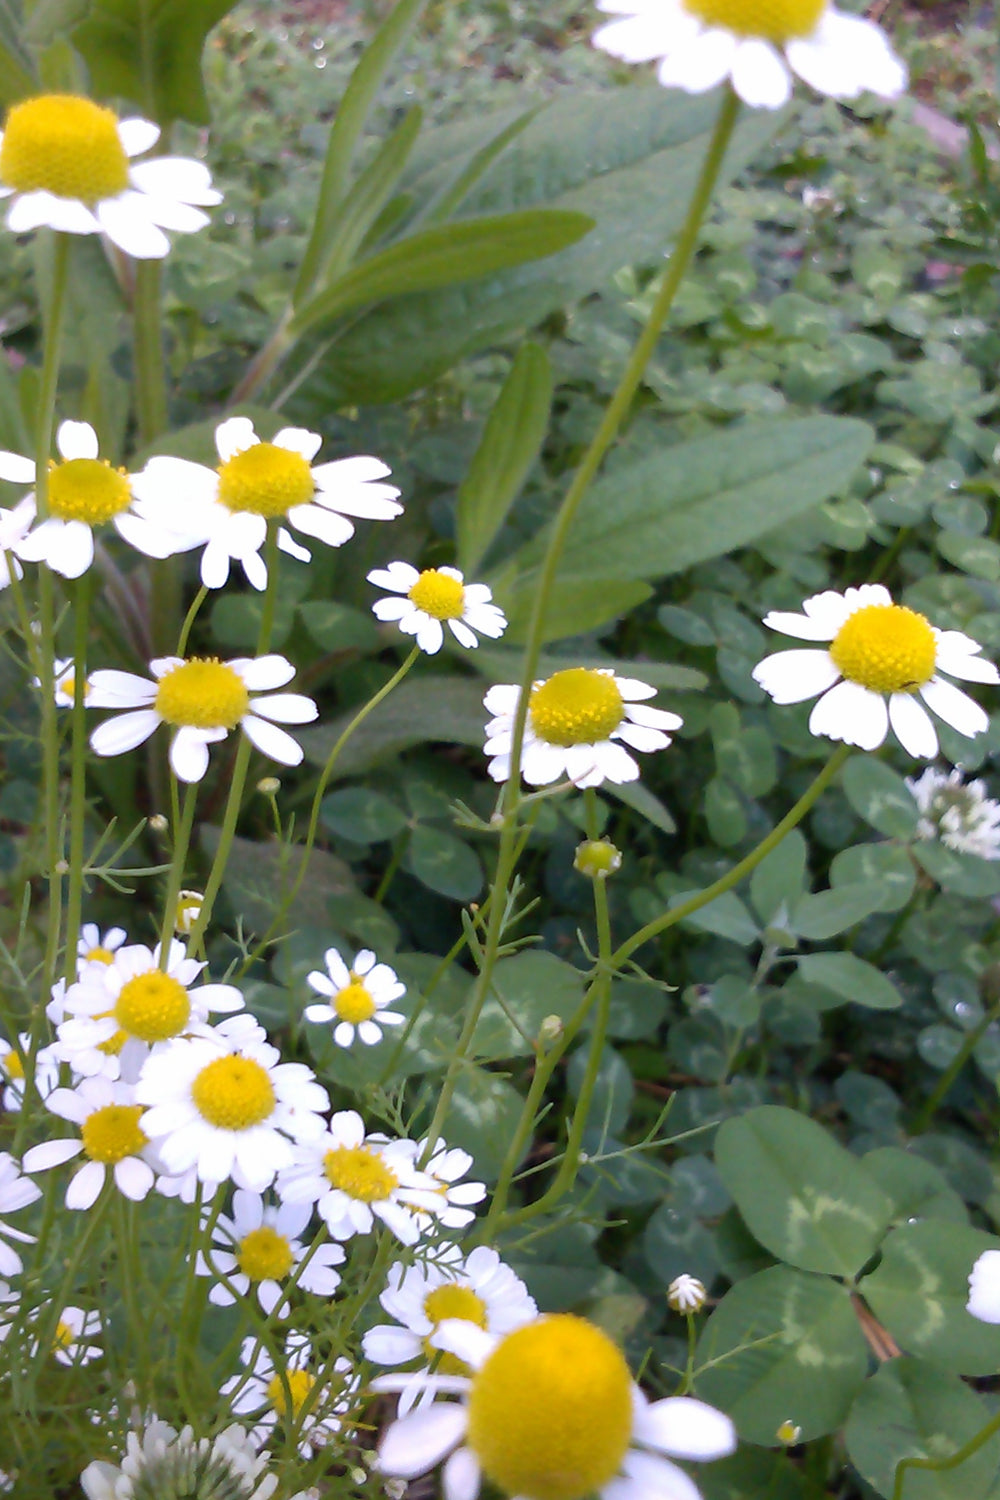 fresh chamomile flower blossoms for tea blending